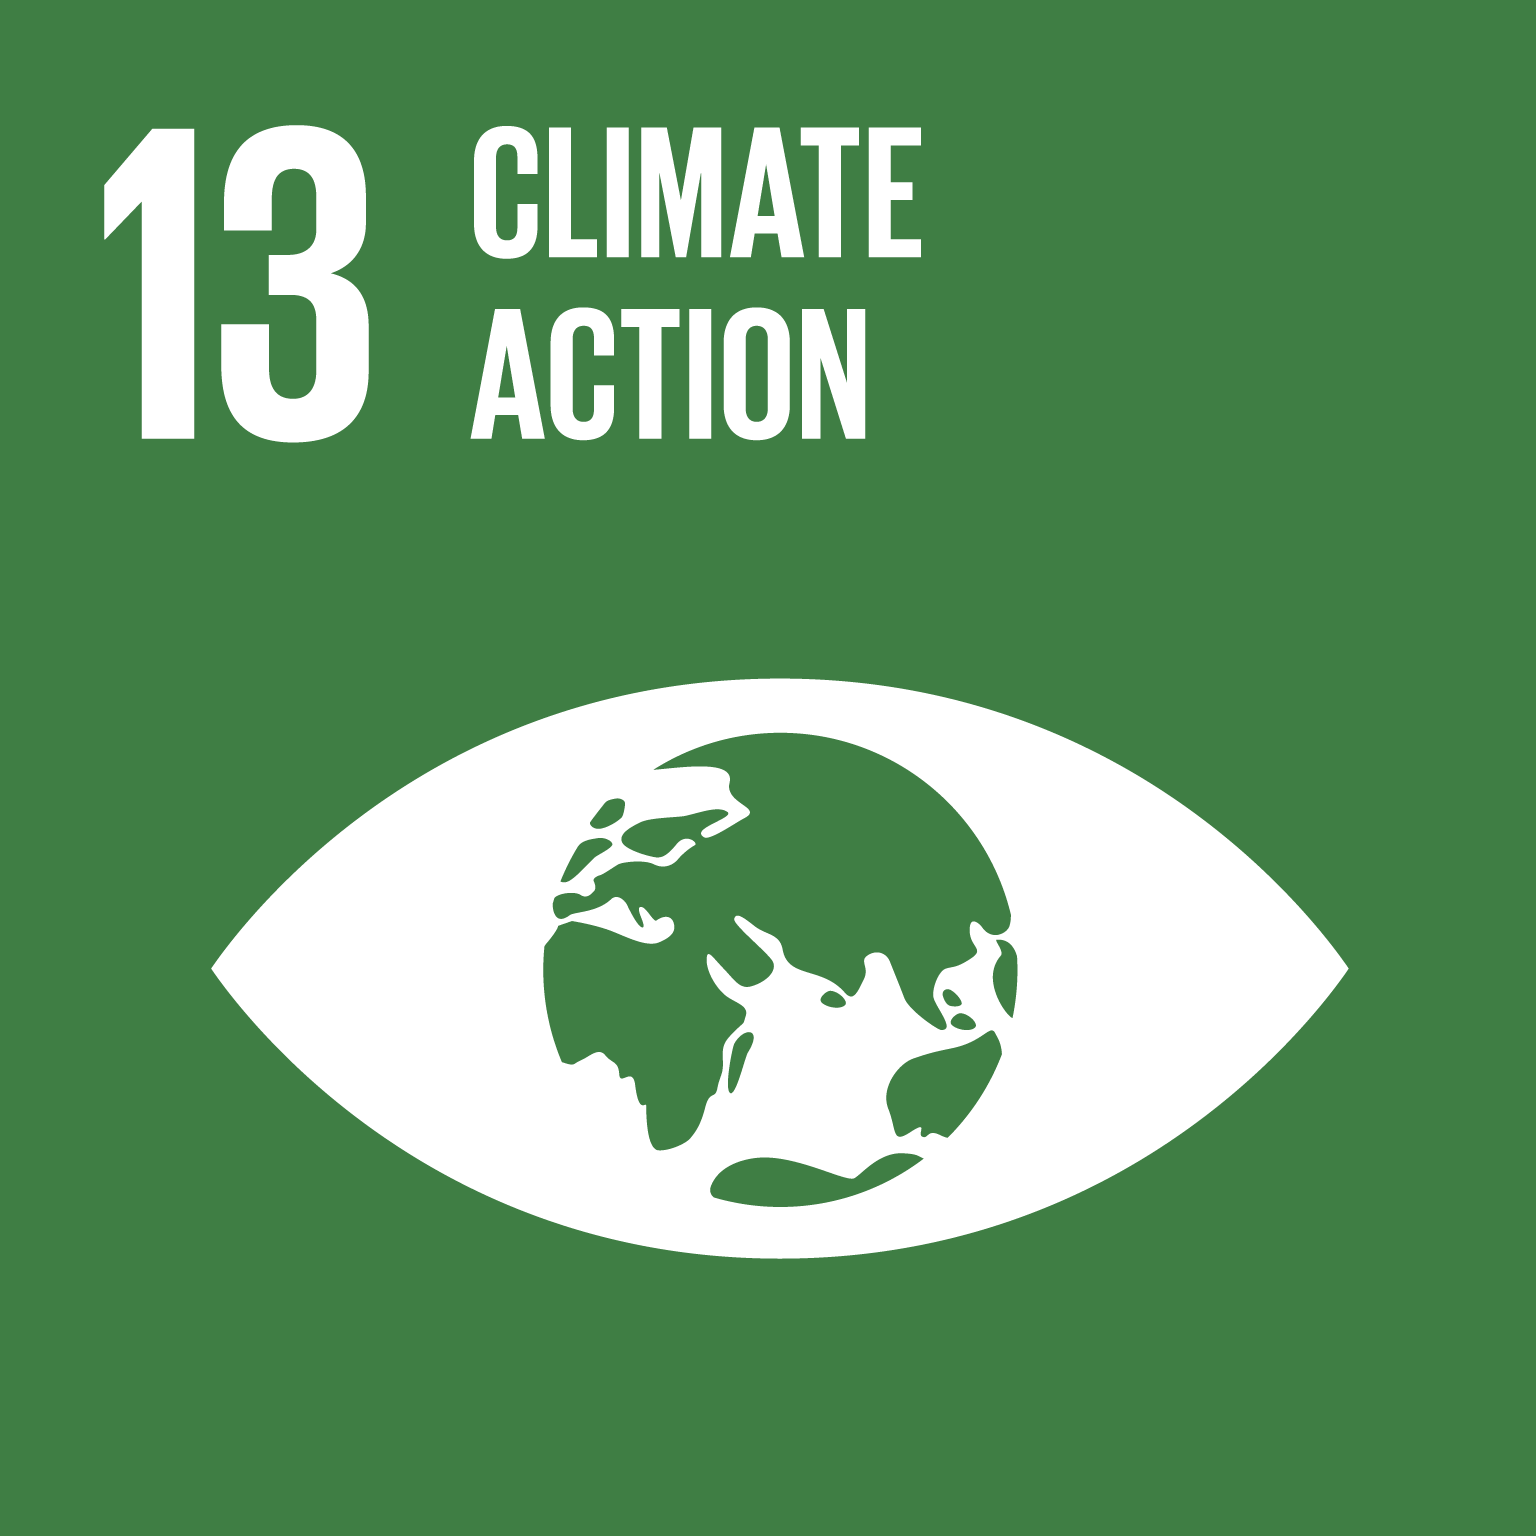 sdg icon #13 CLIMATE ACTION